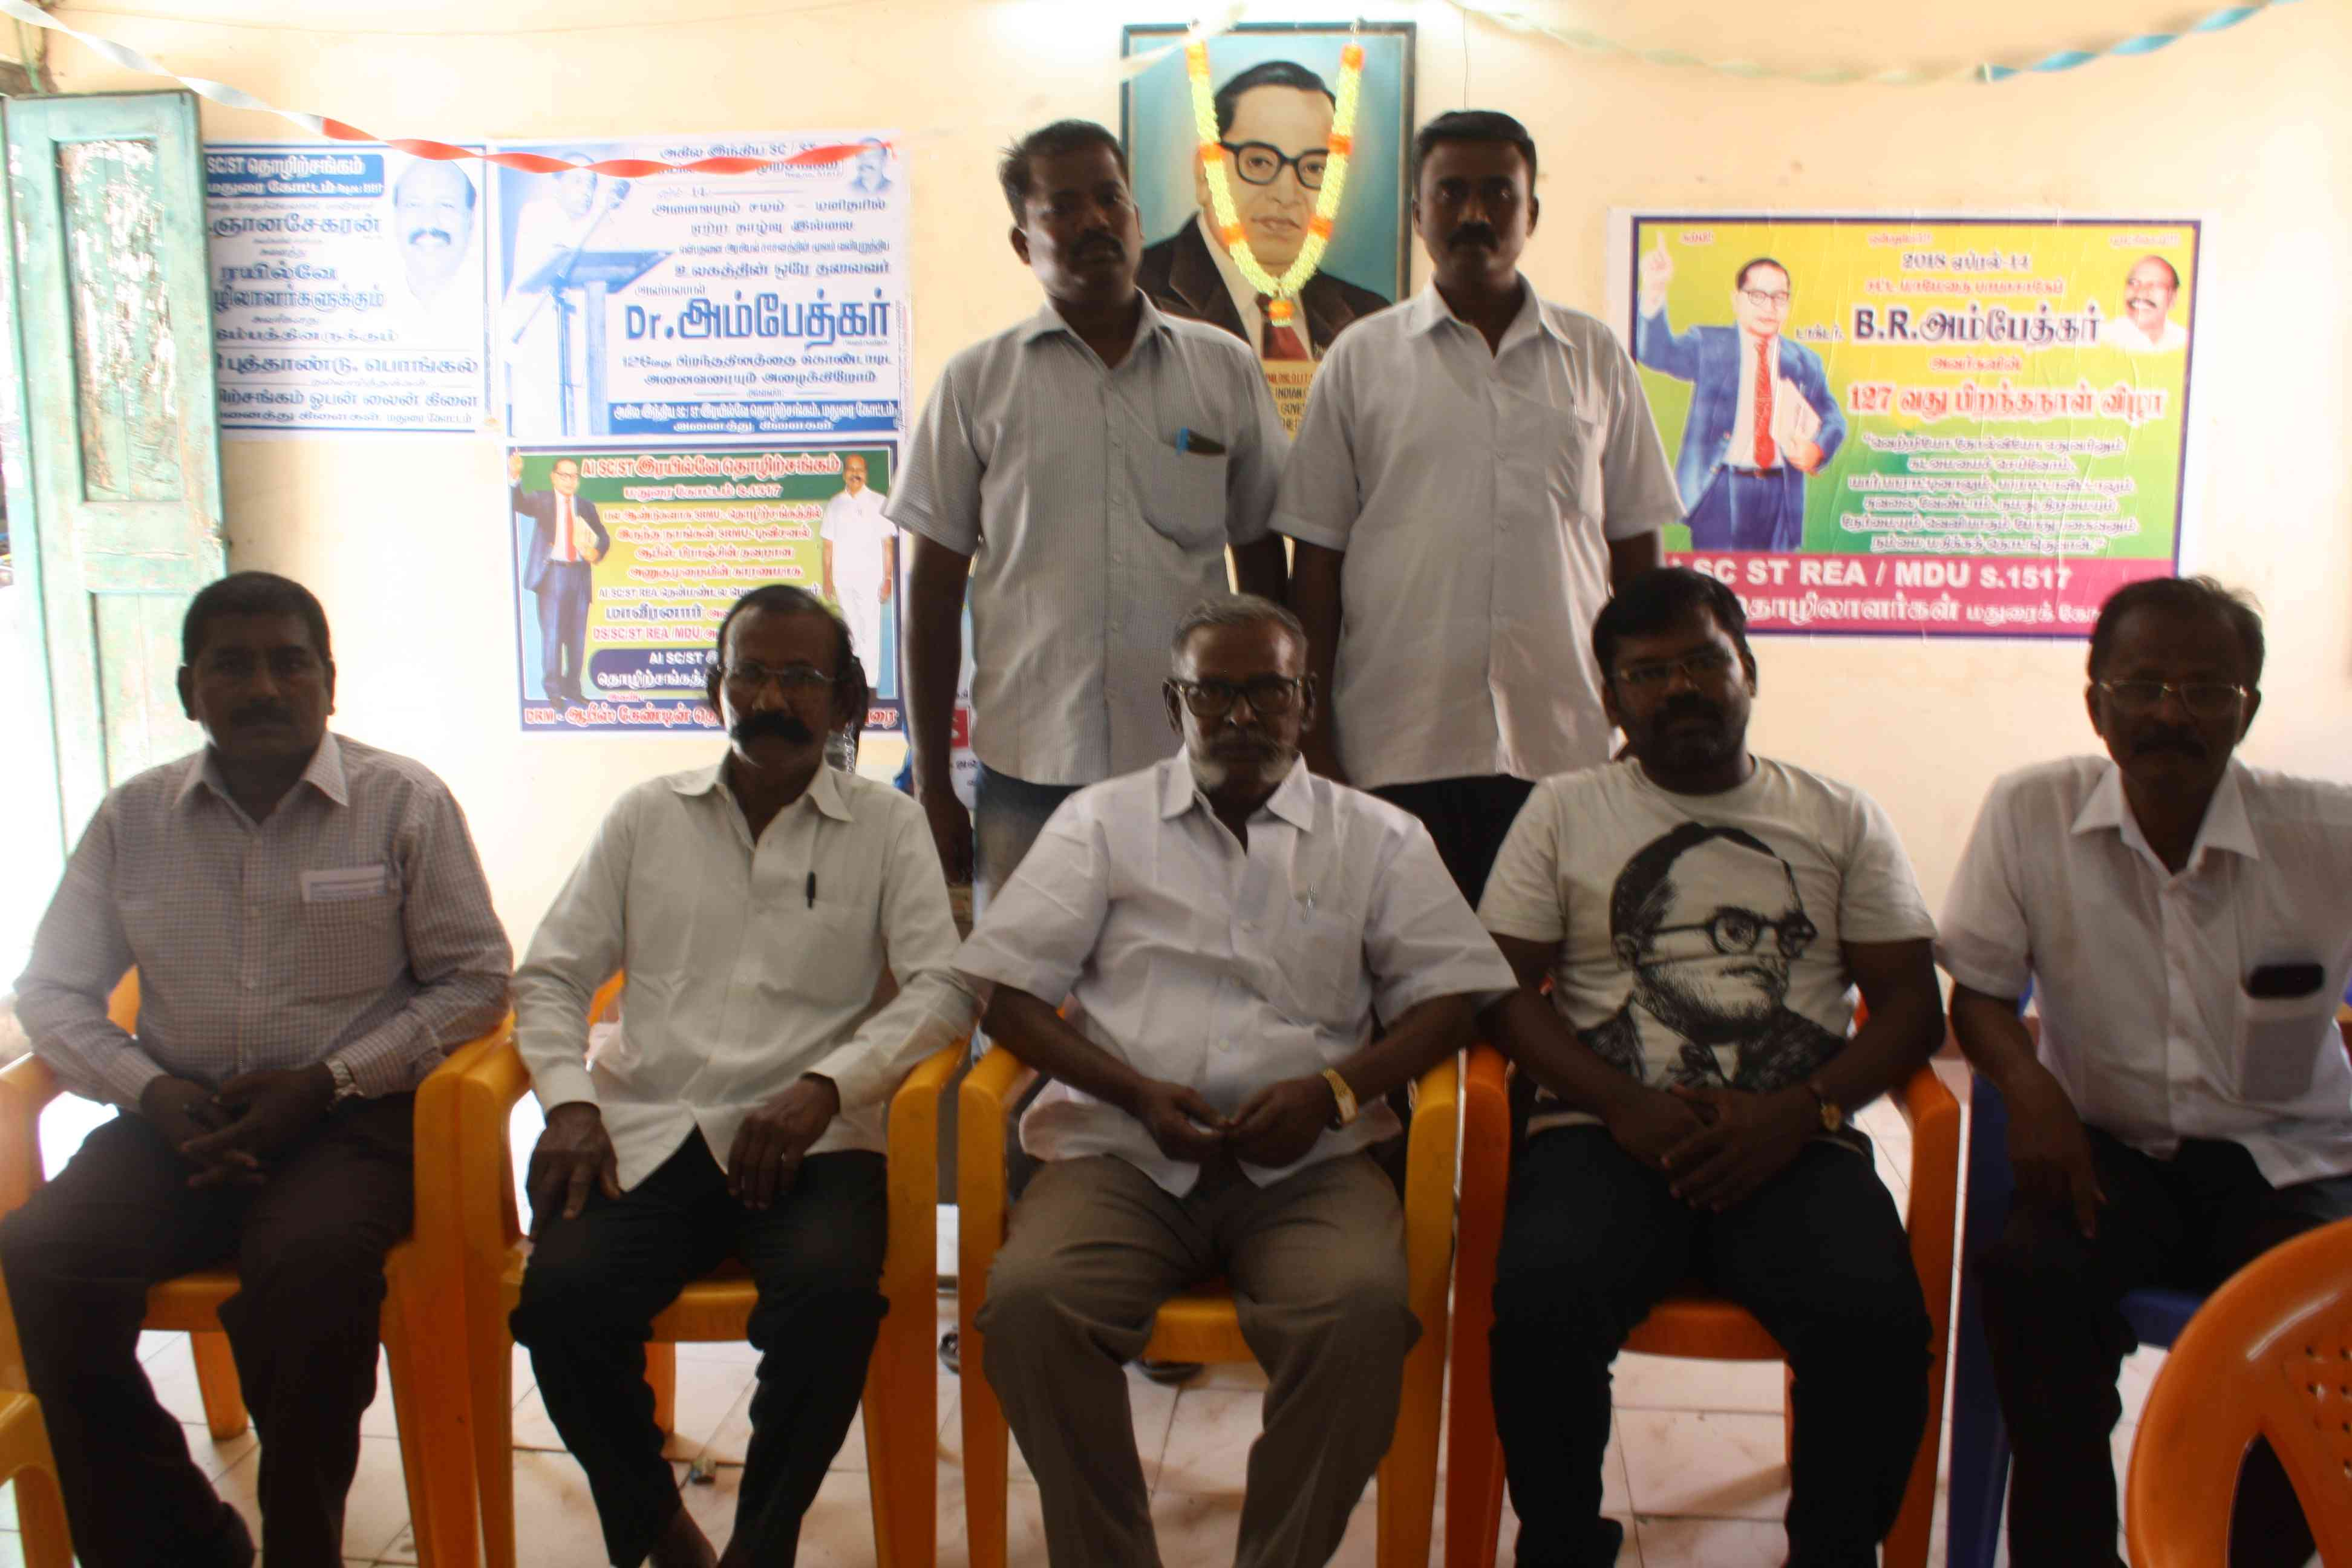 Members of the Devendrakula Community Protection Federation at a meeting in Madurai, Tamil Nadu, on March 23.